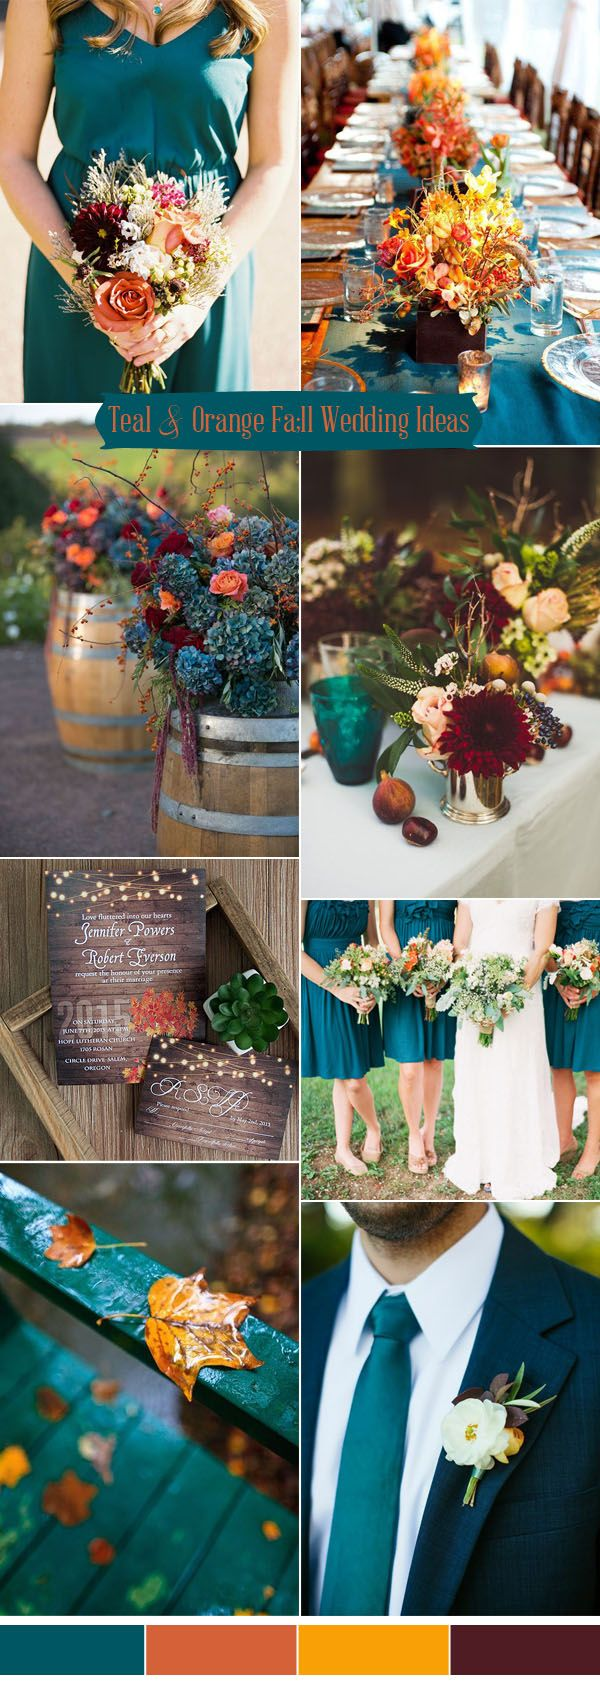 Teal Blue And Orange Rustic Fall Wedding Colors For 2017 Trends